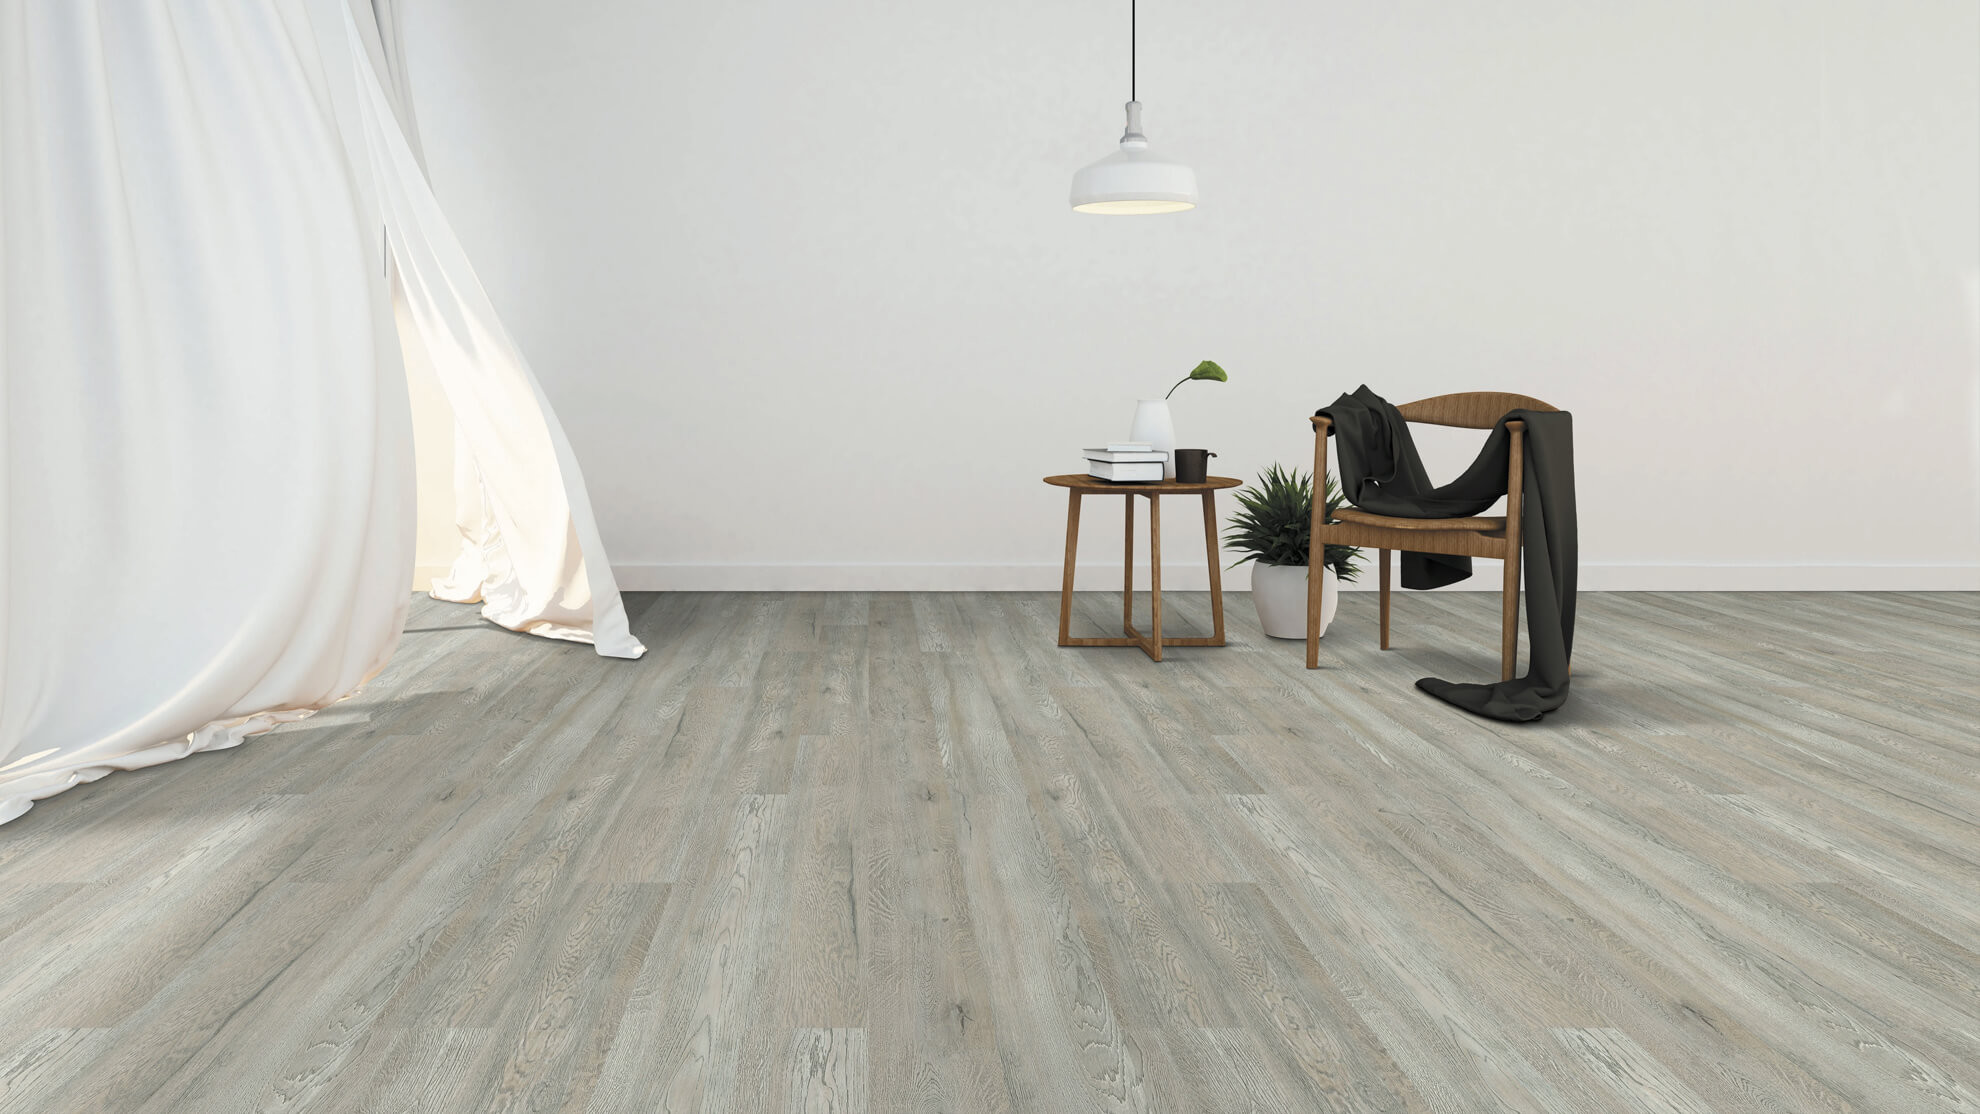 chicago hardwood flooring distributors of earthwerks flooring in noble classic plus alaska oak ncr 9708